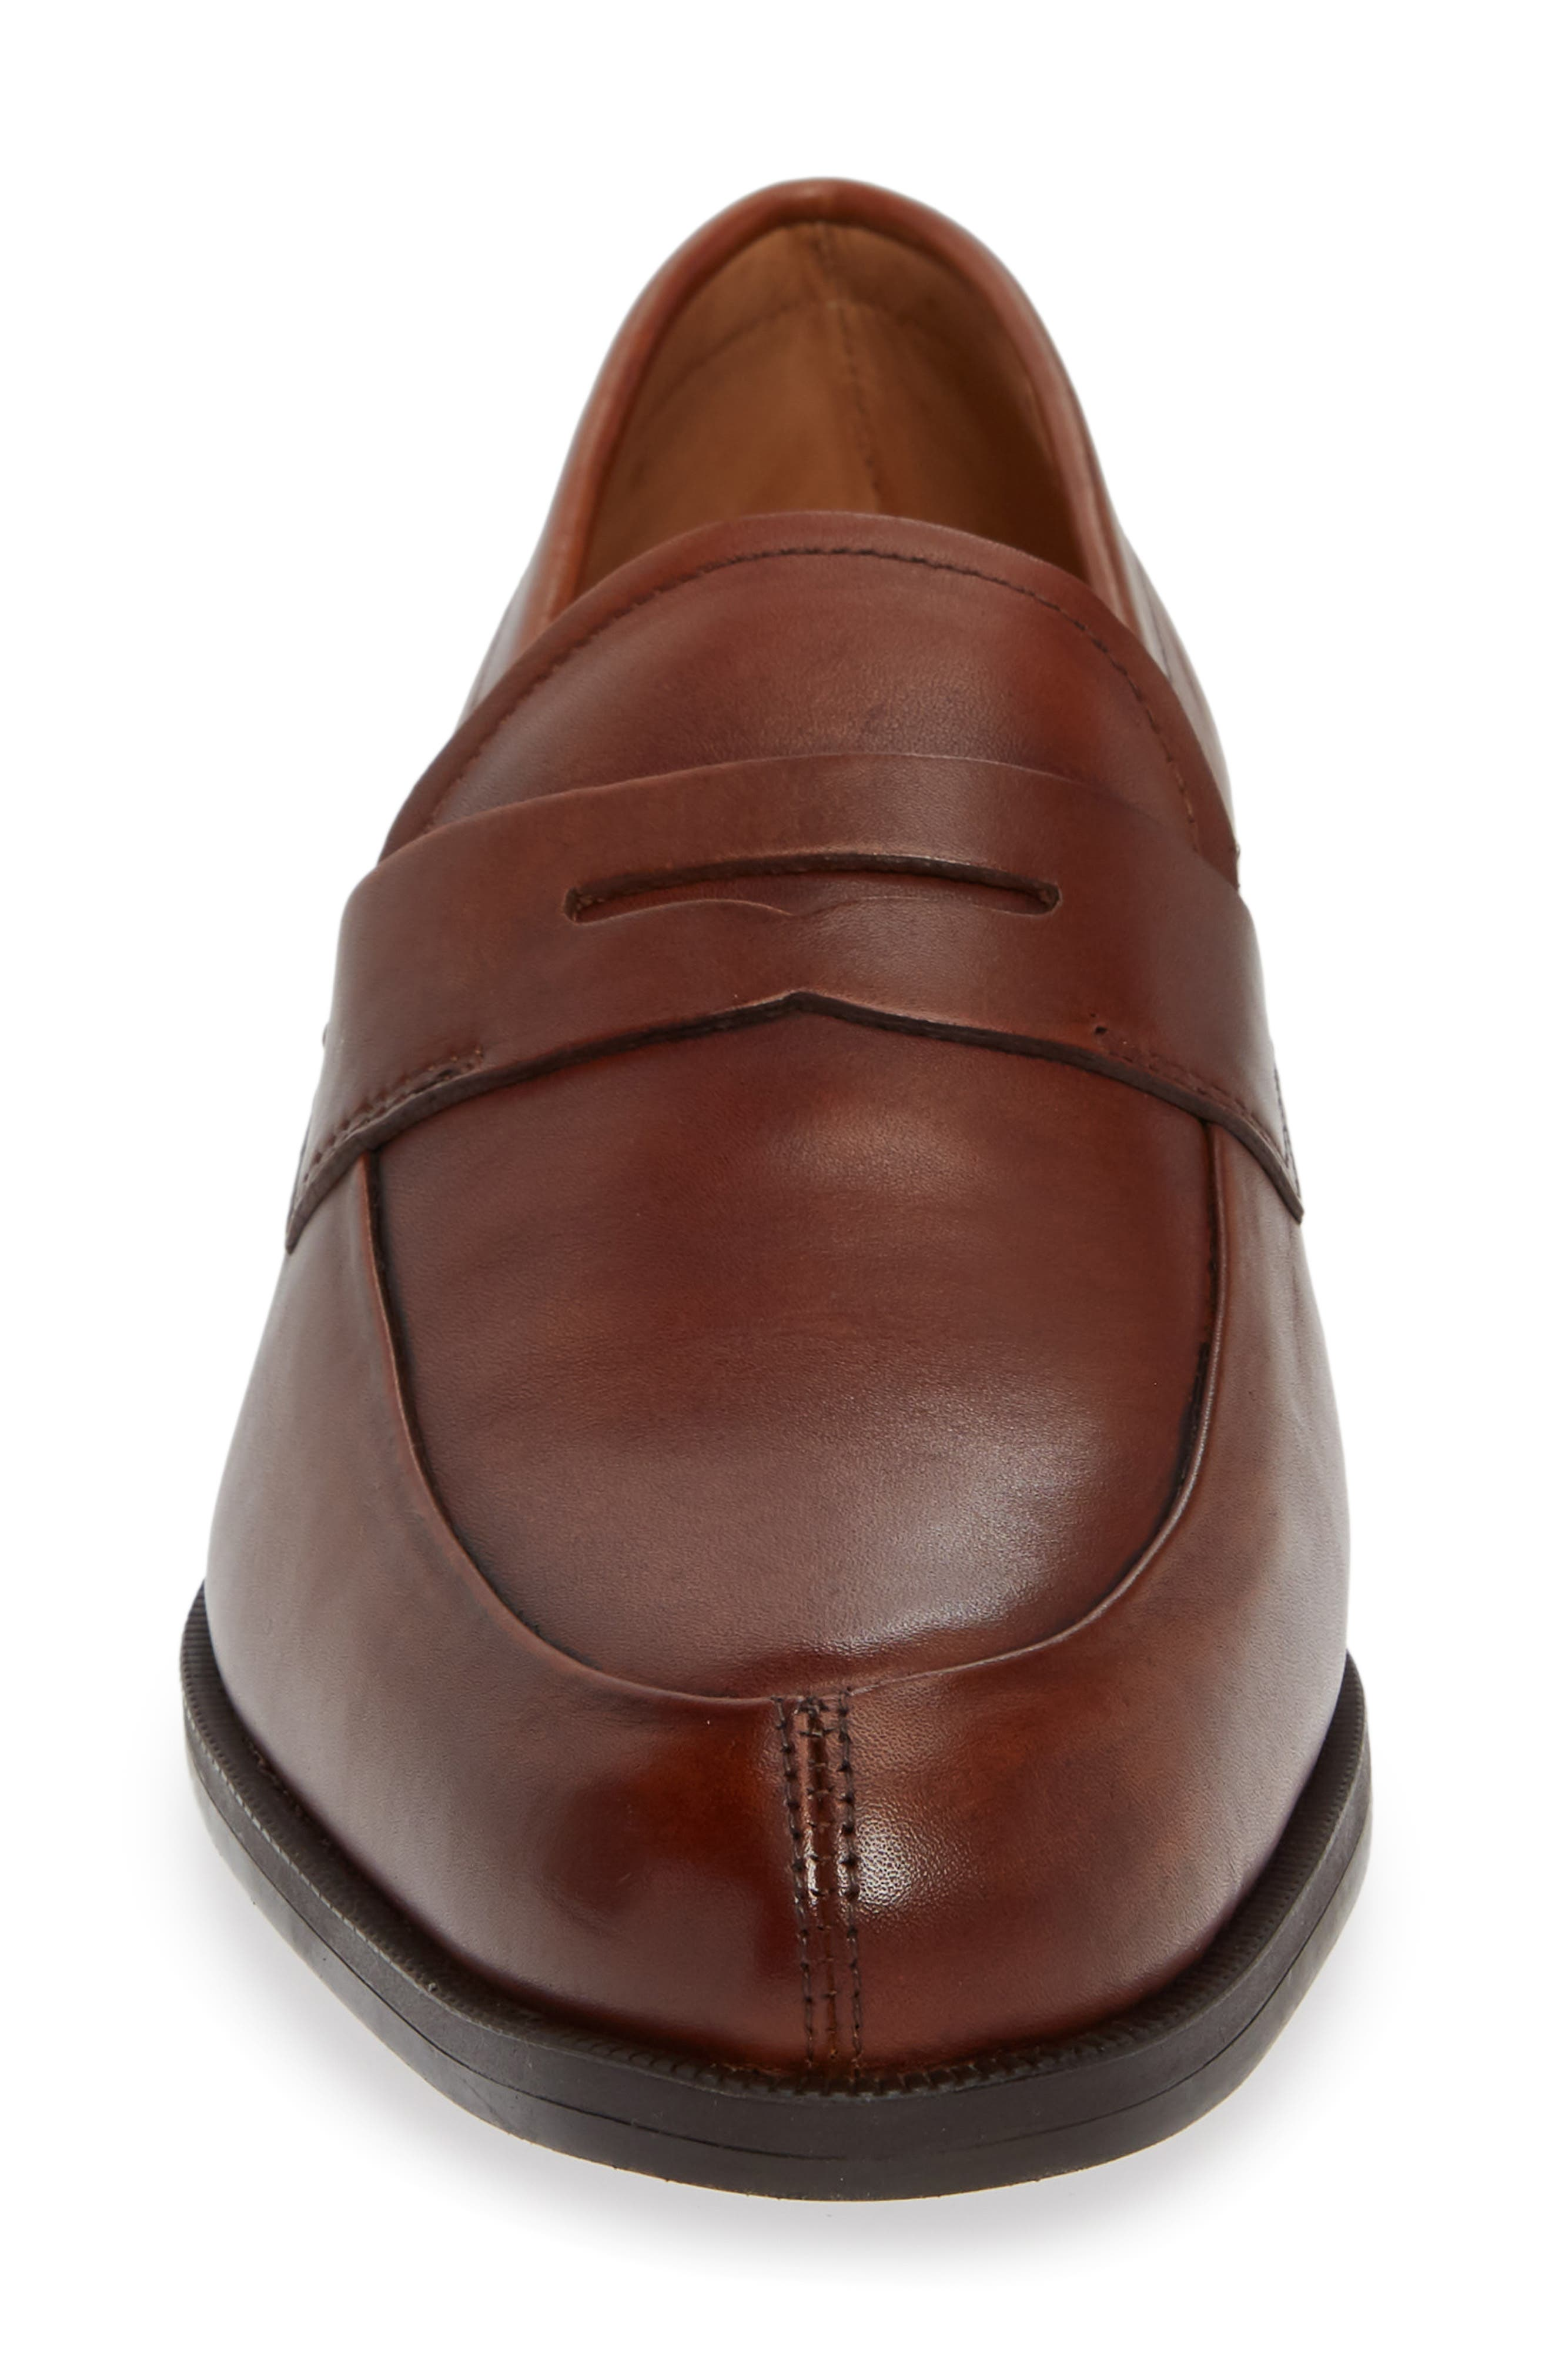 Iggi Penny Loafer,                             Alternate thumbnail 4, color,                             COGNAC LEATHER